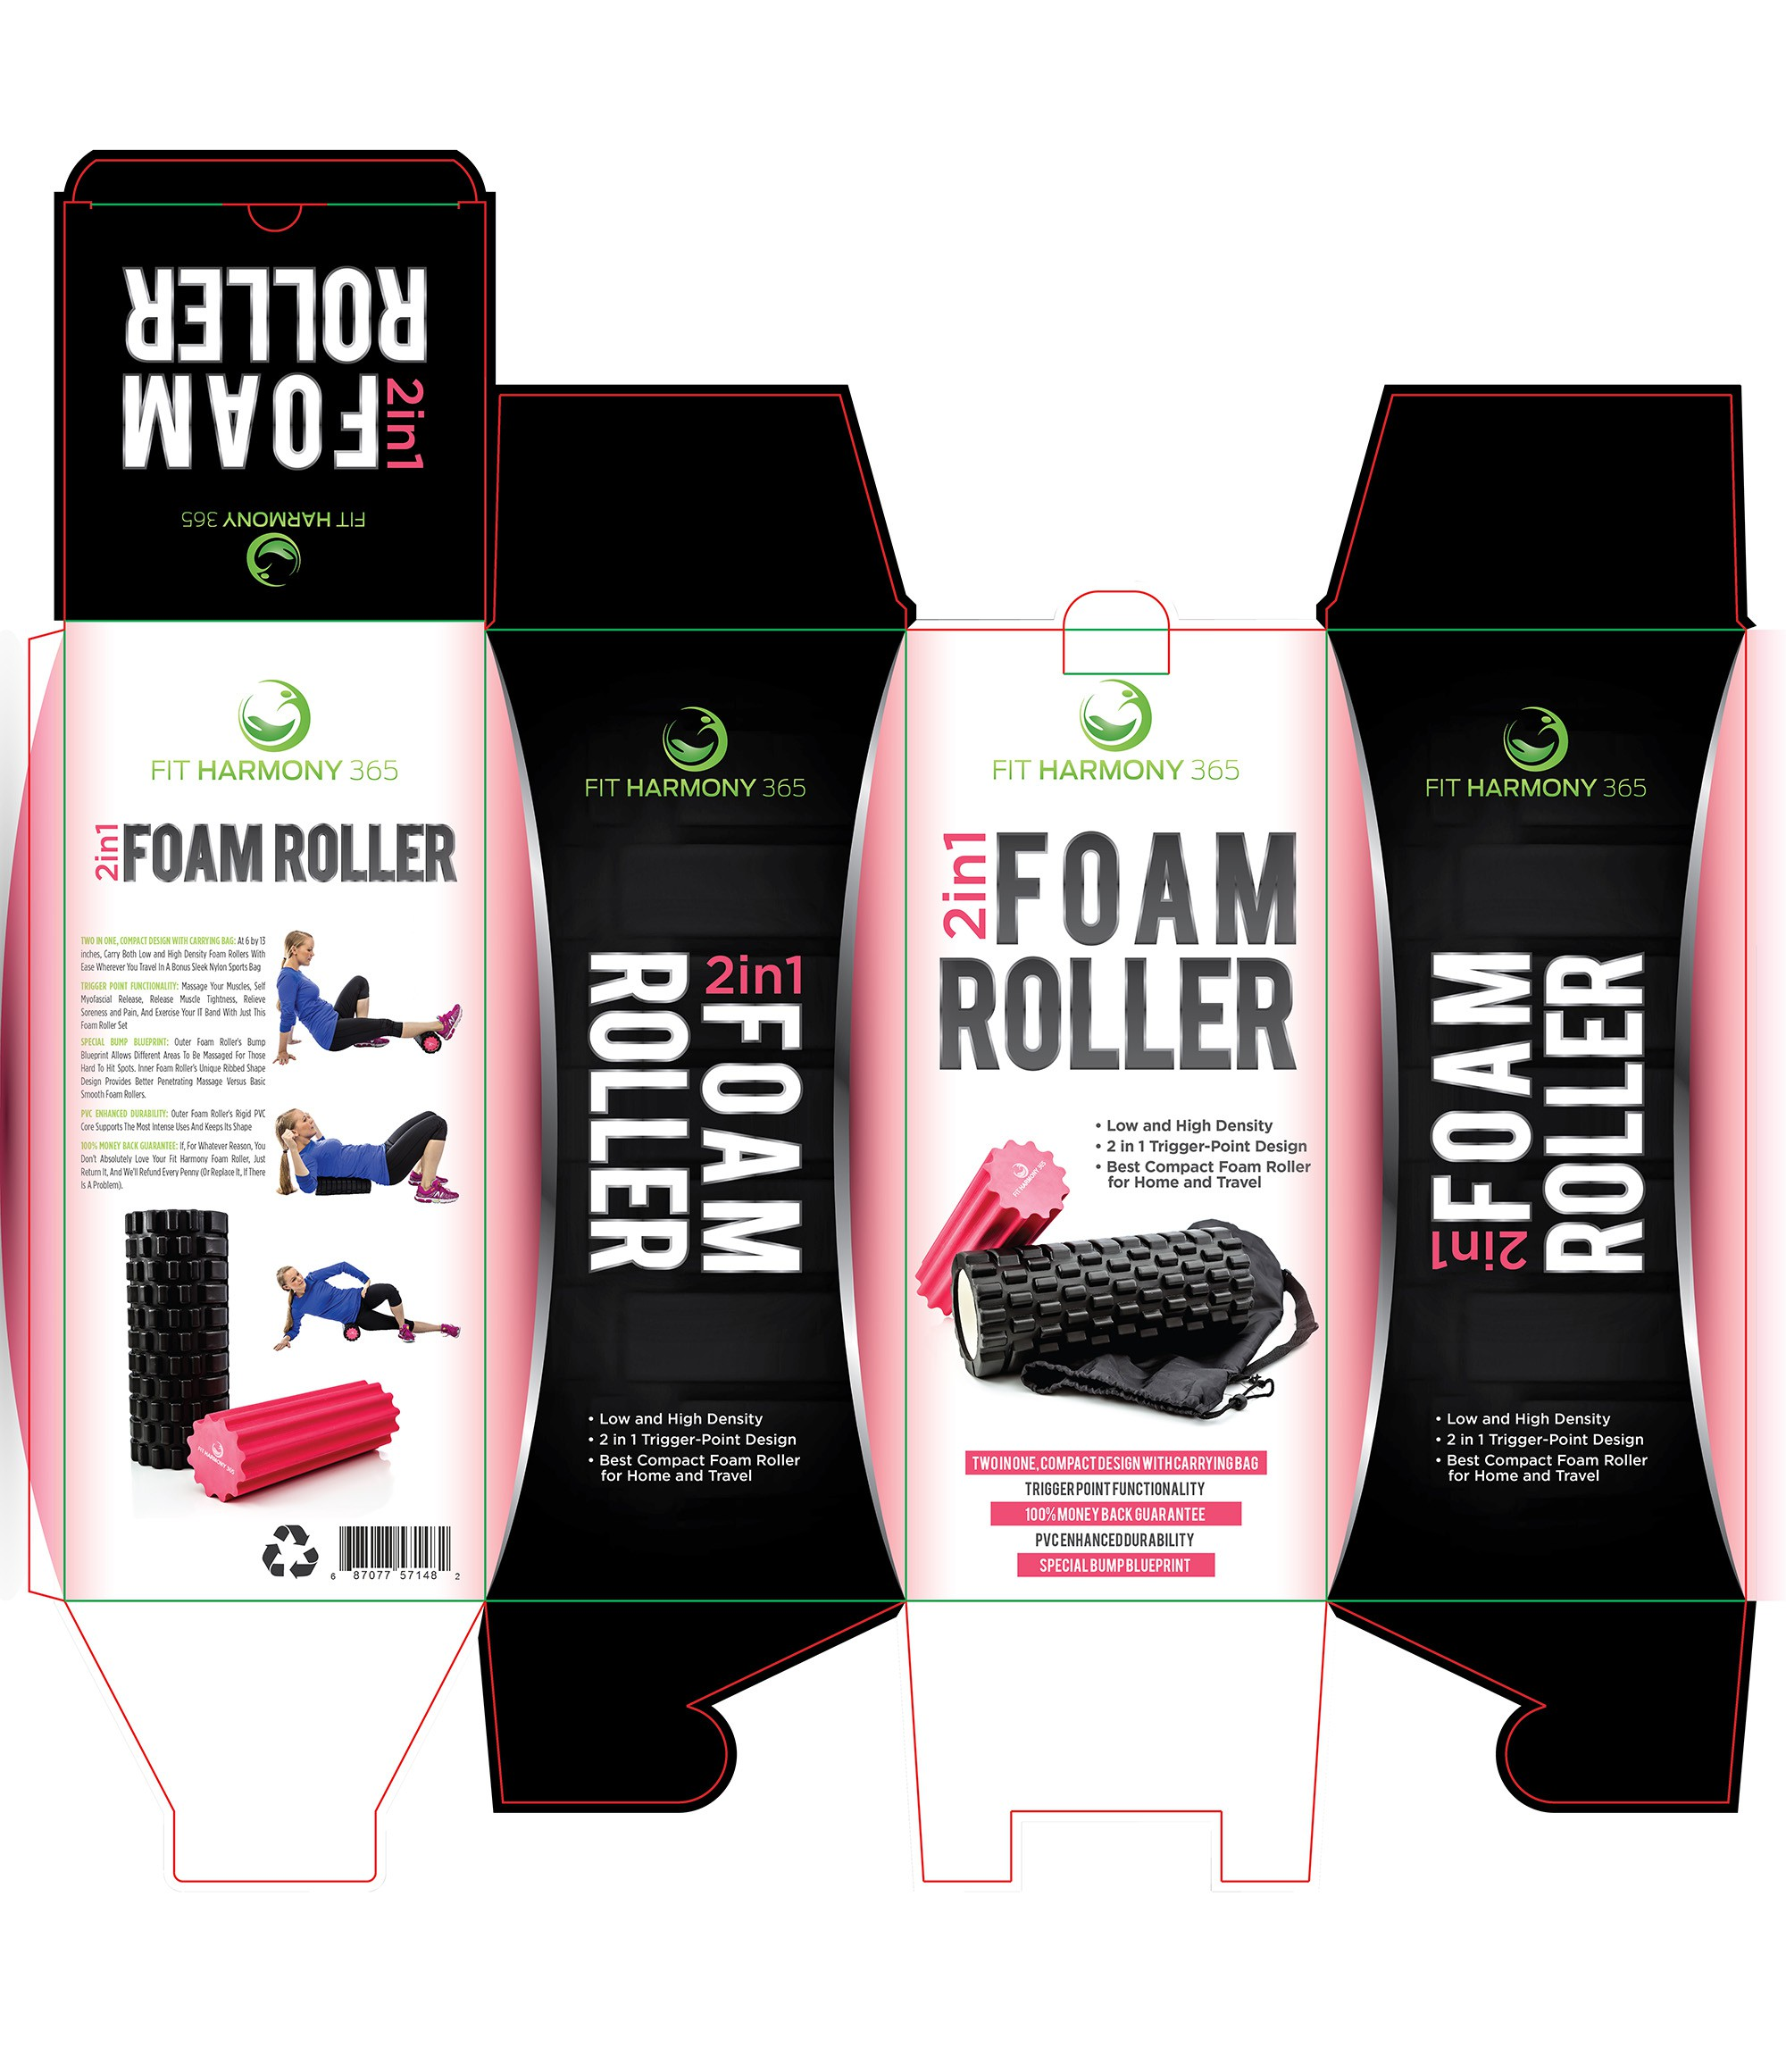 Design a FUN & creative packaging for a two-in-one foam roller, with a passion for fitness!